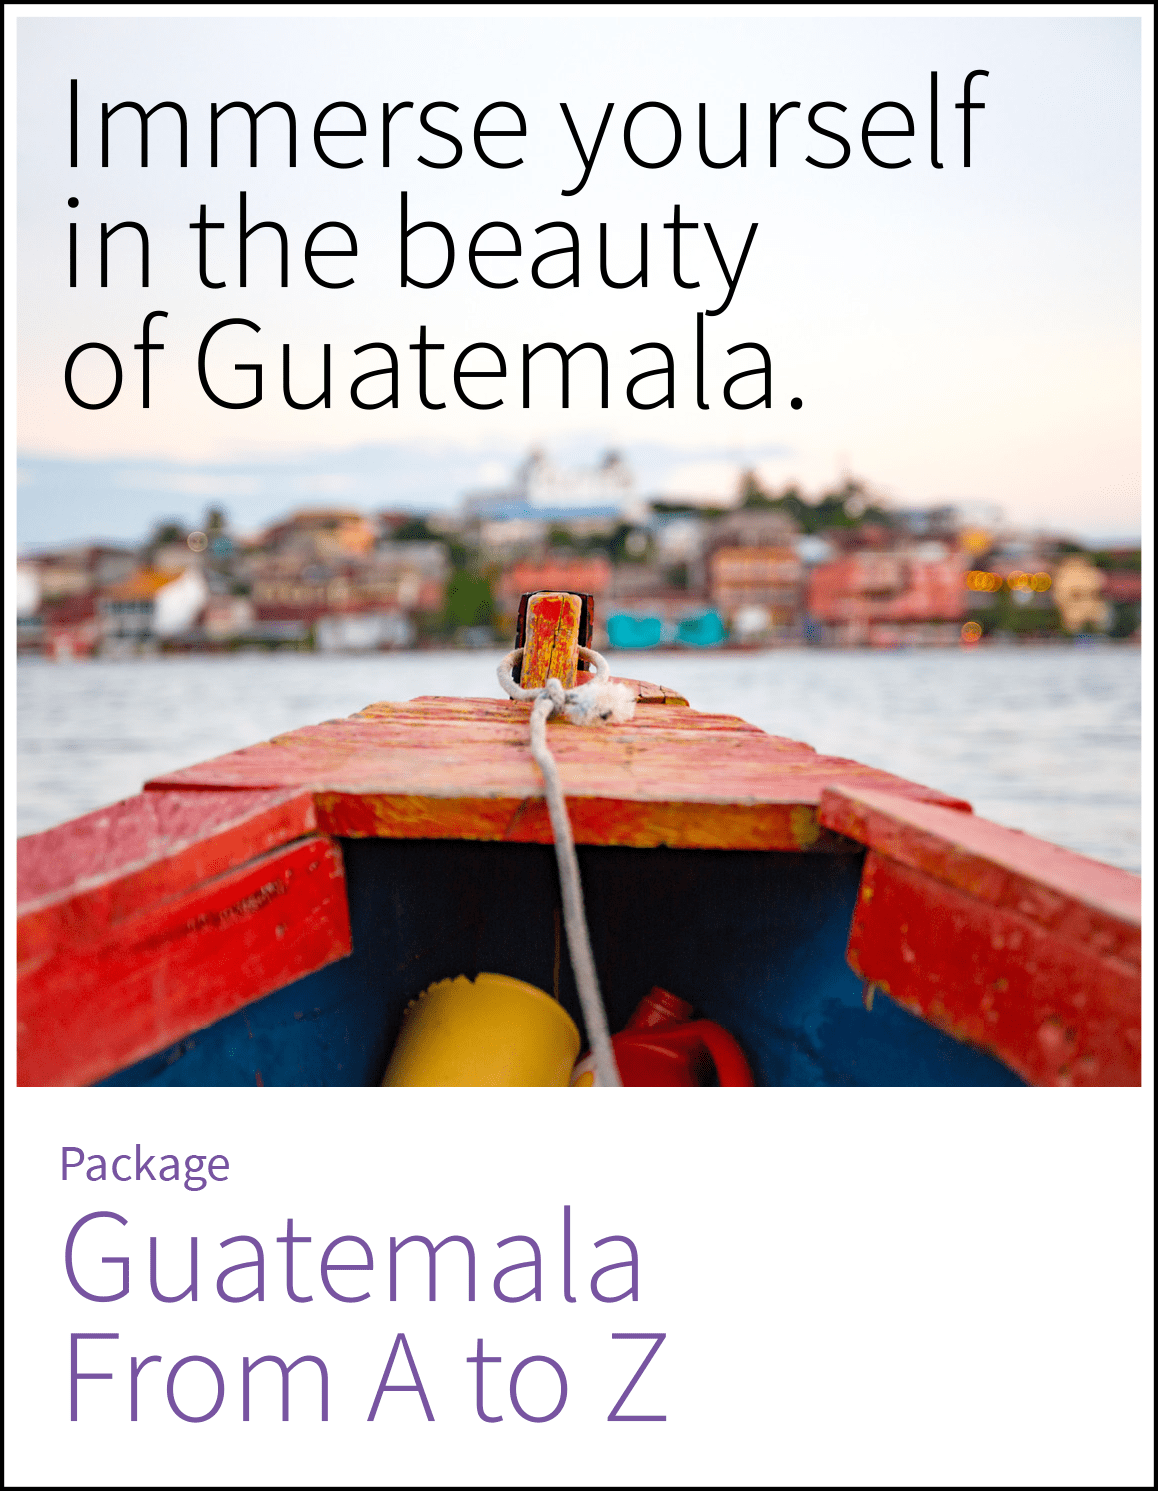 Two week package to discover Guatemala and its main attractions.